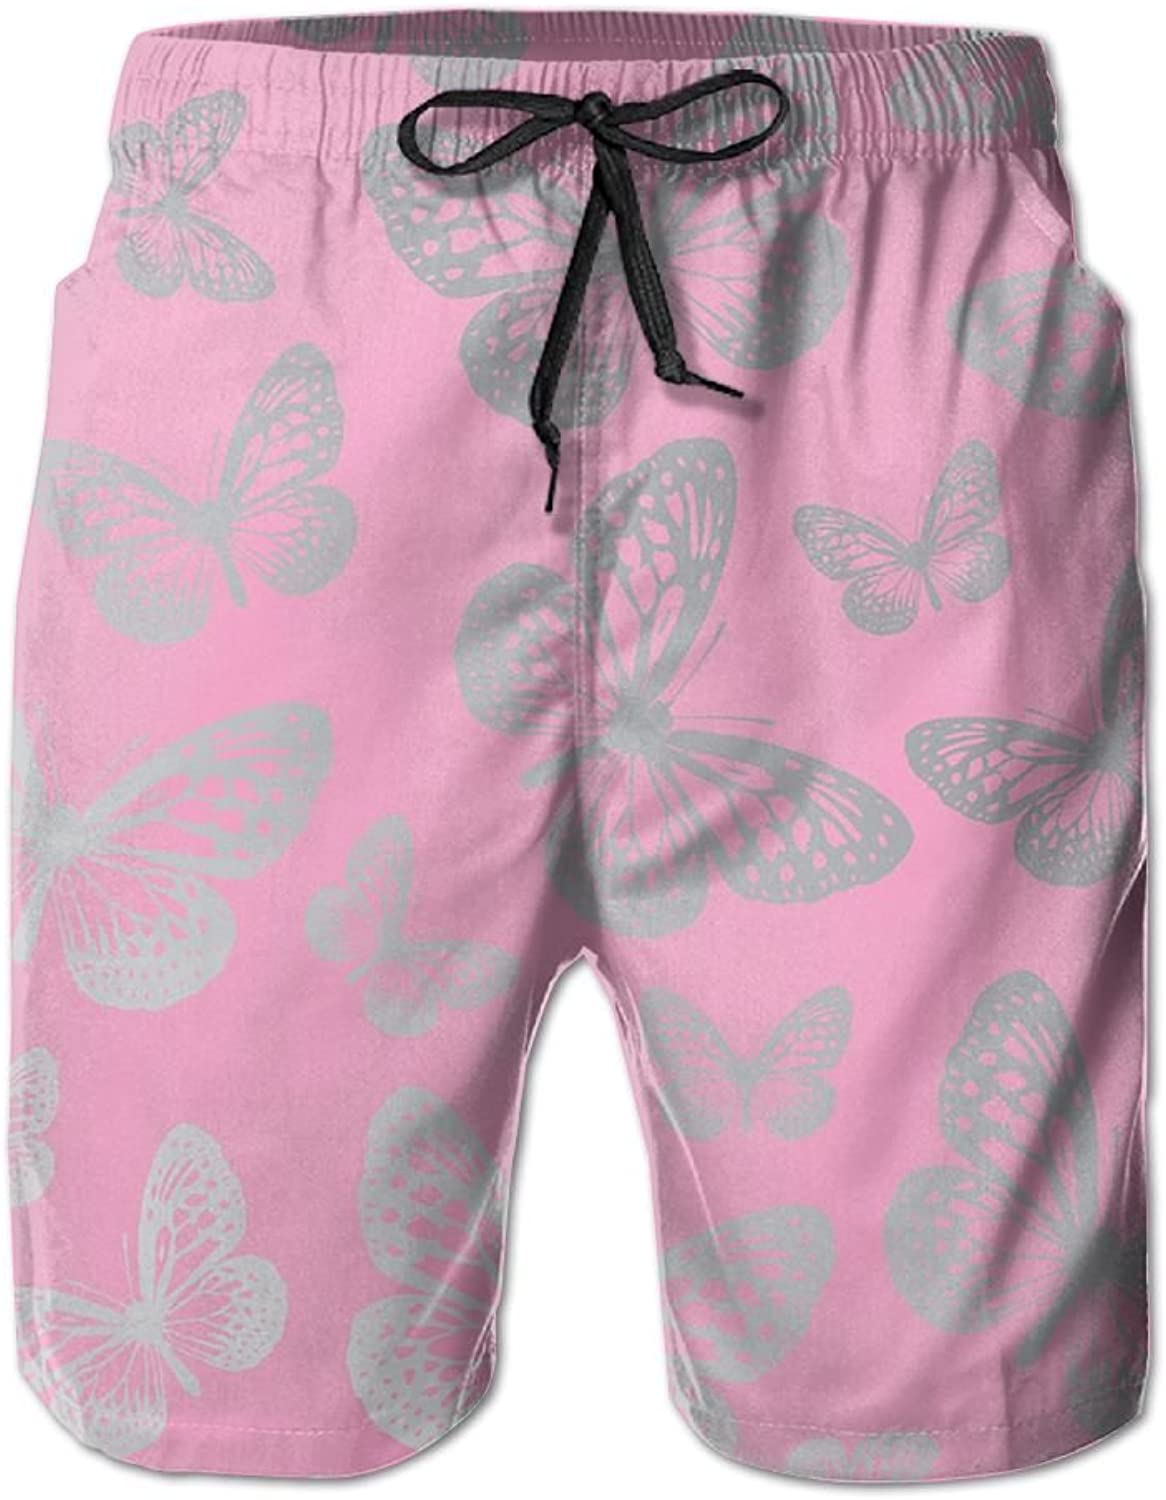 b473c5cc0e Tydo Tydo Tydo Quick Dry Beach Shorts Butterfly Pink Pattern Swim Trunks  Surf Board Pants With Pockets For Men b1378c